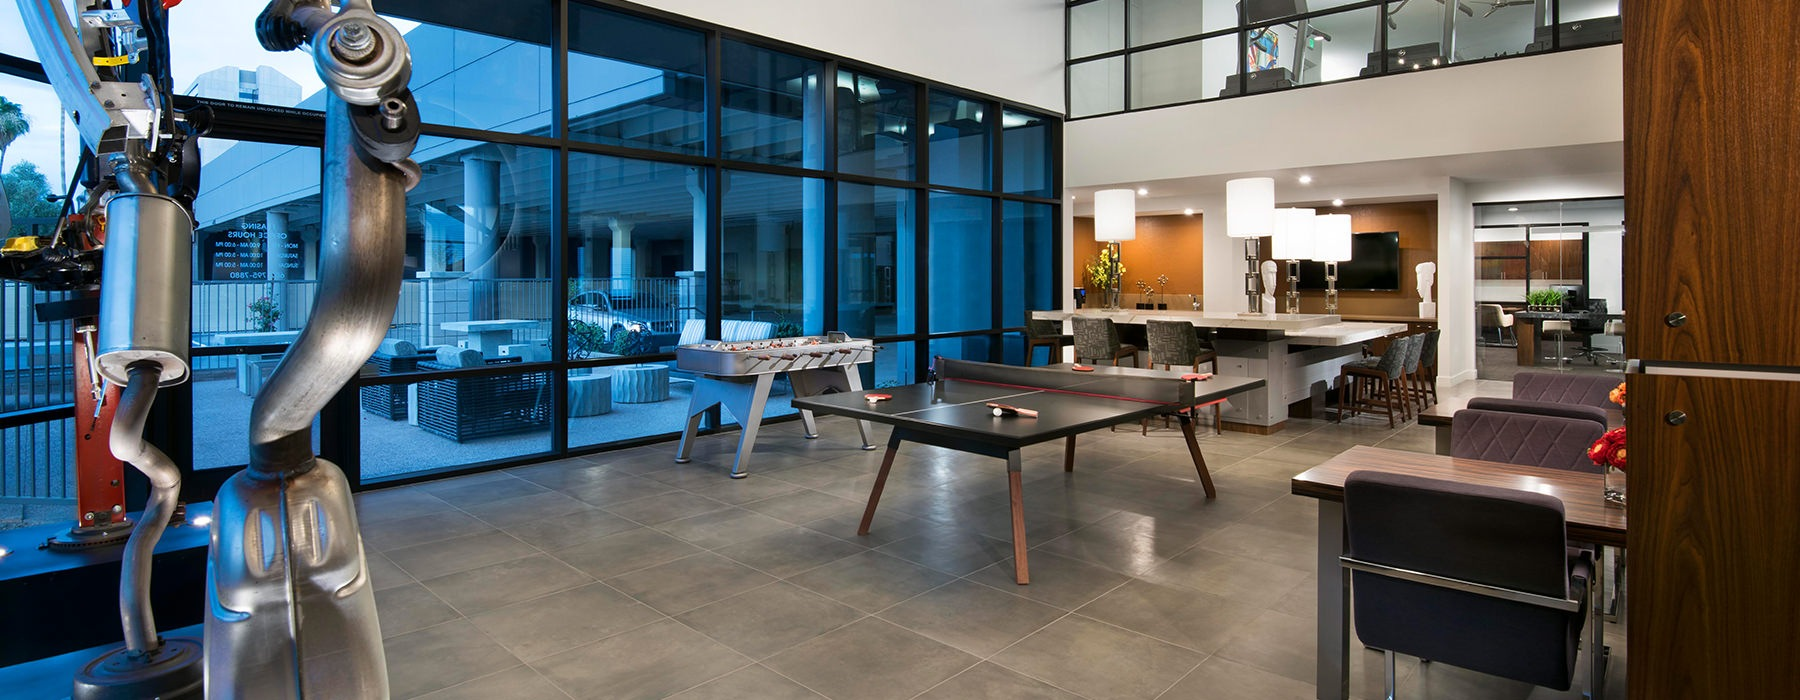 Resident clubhouse with ping pong table and floor-to-ceiling windows